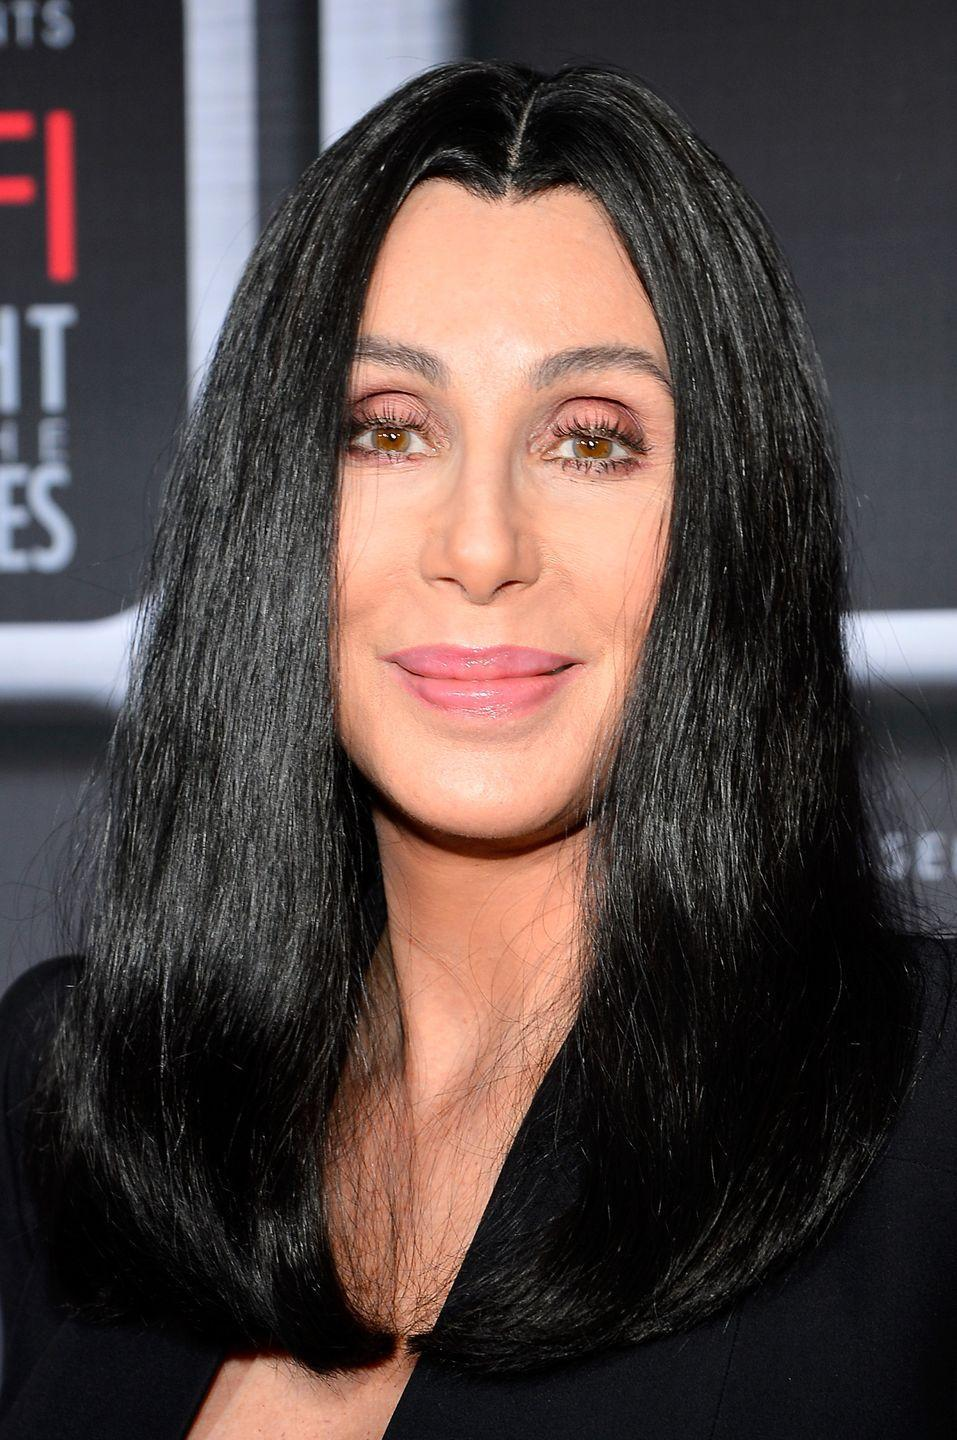 """<p>""""It could have been a much better film. It was always sad that it was not a good film,"""" she told <a href=""""http://www.theguardian.com/music/2013/nov/07/cher-women-sex-objects-interview"""" rel=""""nofollow noopener"""" target=""""_blank"""" data-ylk=""""slk:The Guardian"""" class=""""link rapid-noclick-resp""""><em>The Guardian</em></a> in 2013, calling director Steve Antin a """"really terrible director."""" """"I remember [Antin] saying to me, 'I don't care about what you say, I just want to shoot the dance numbers.'""""</p>"""